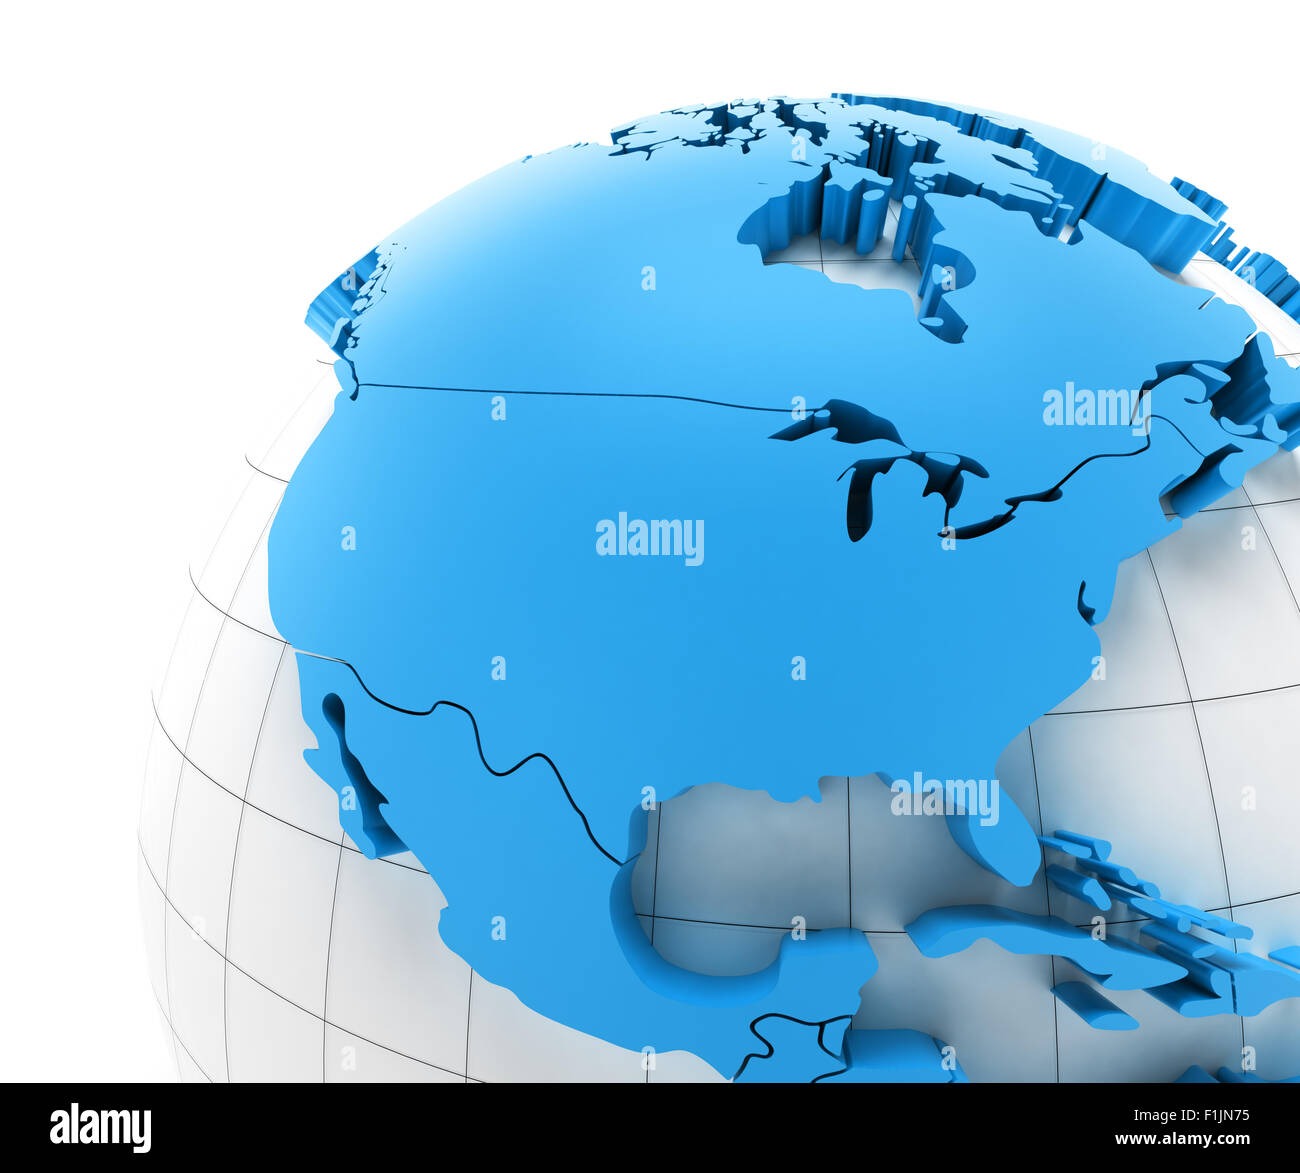 Globe Of USA With National Borders Stock Photo Royalty Free Image - Globe of usa